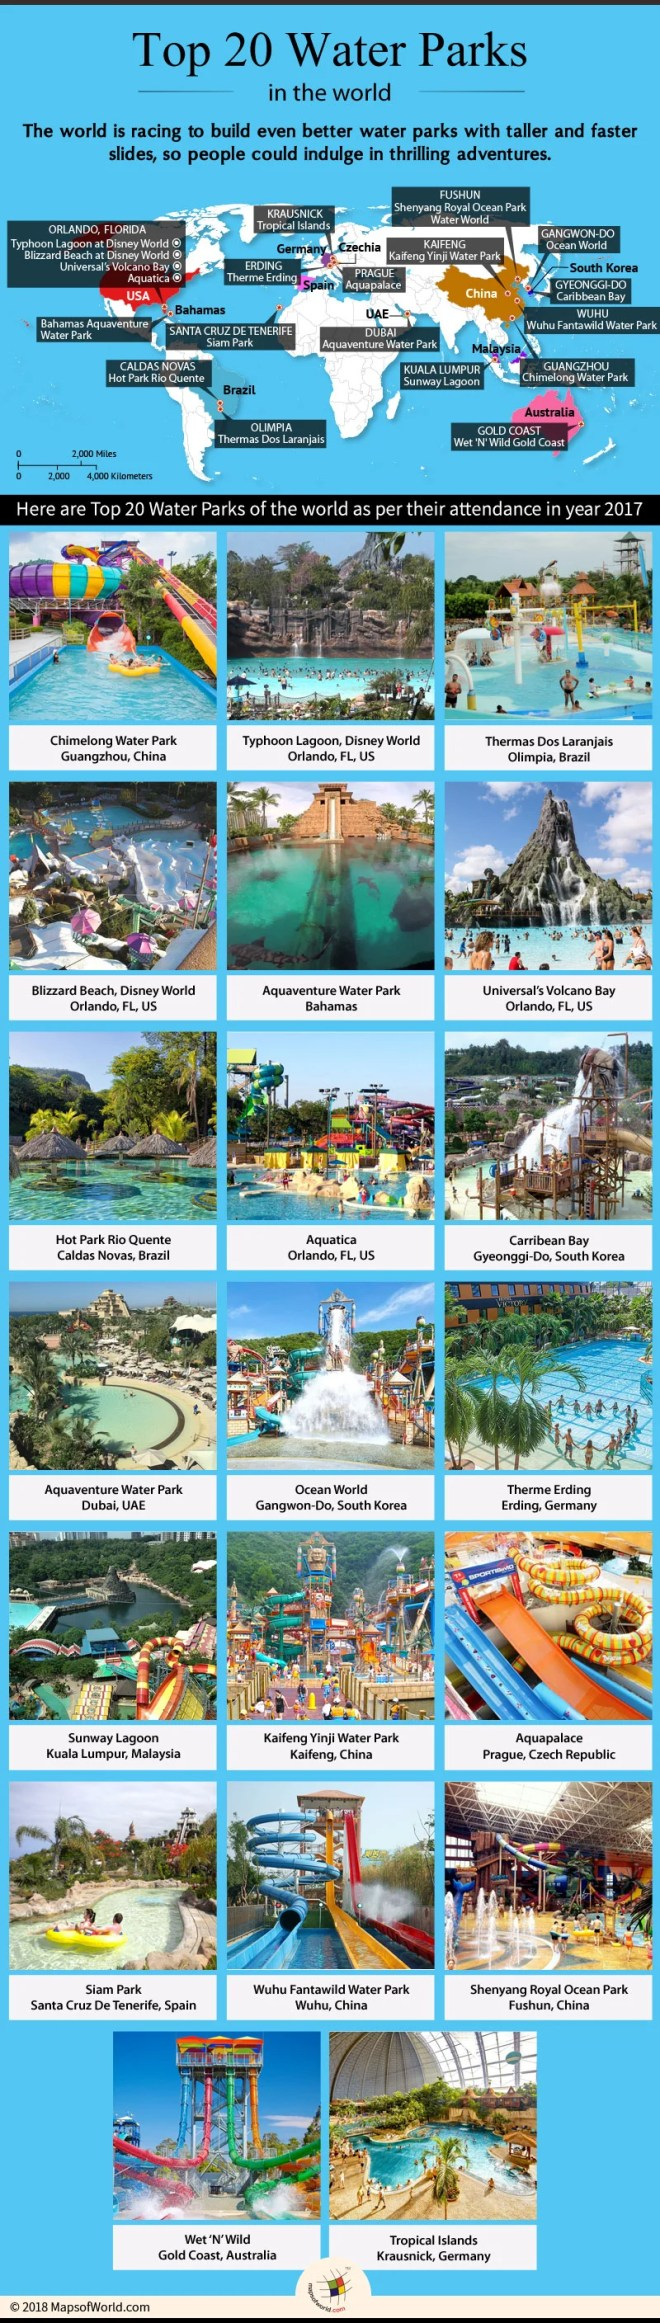 top 20 water parks in the world